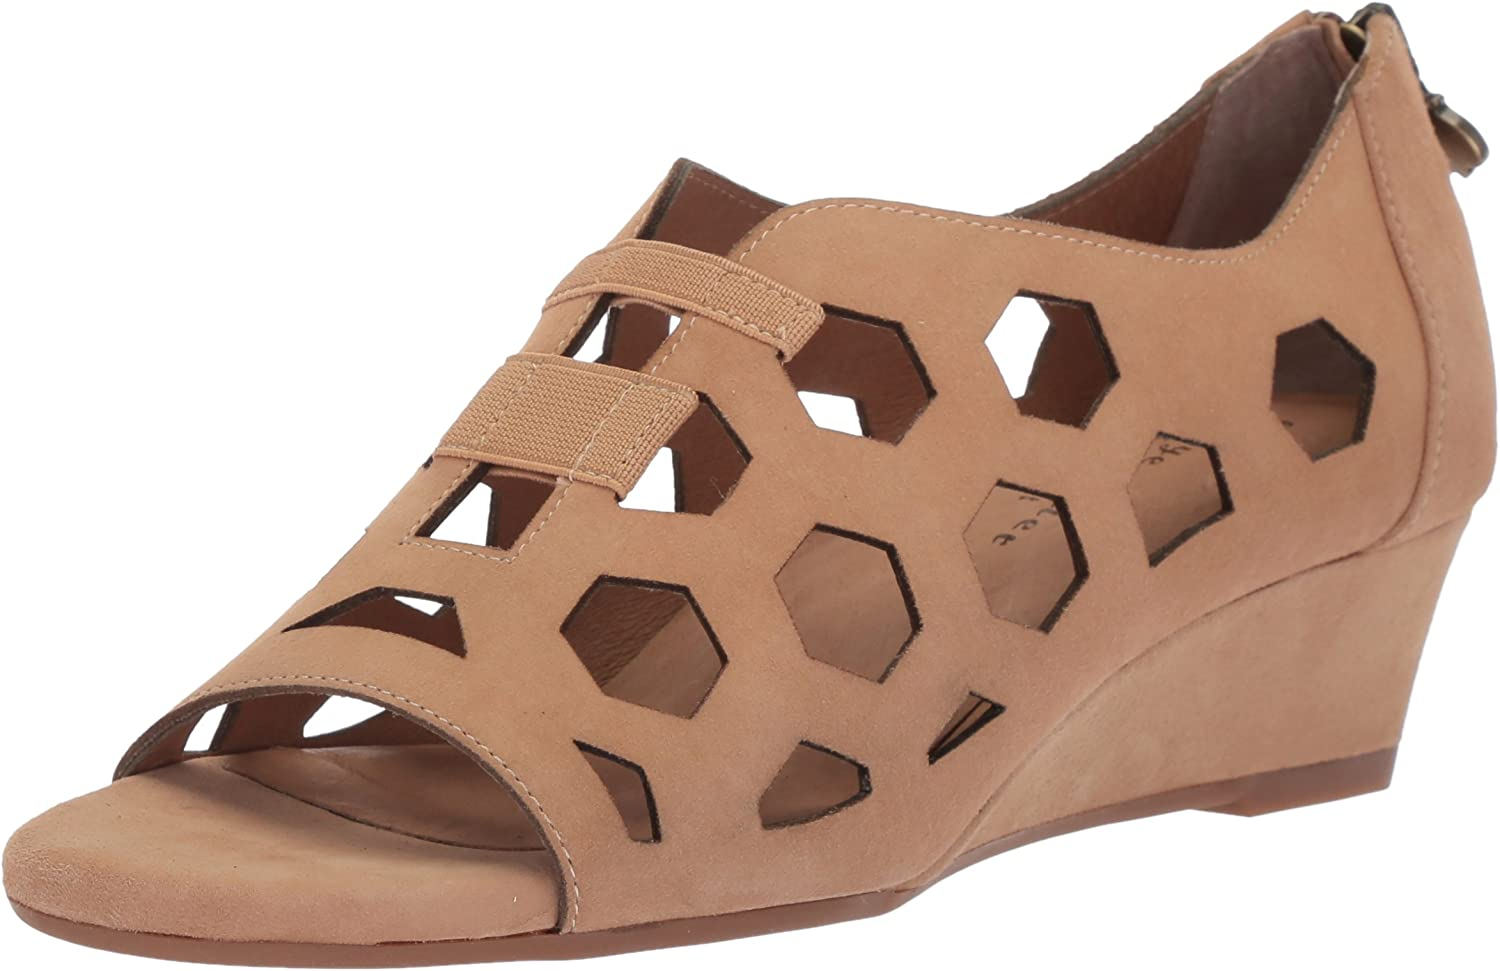 Bettye Muller Womens Sean Wedge Sandal